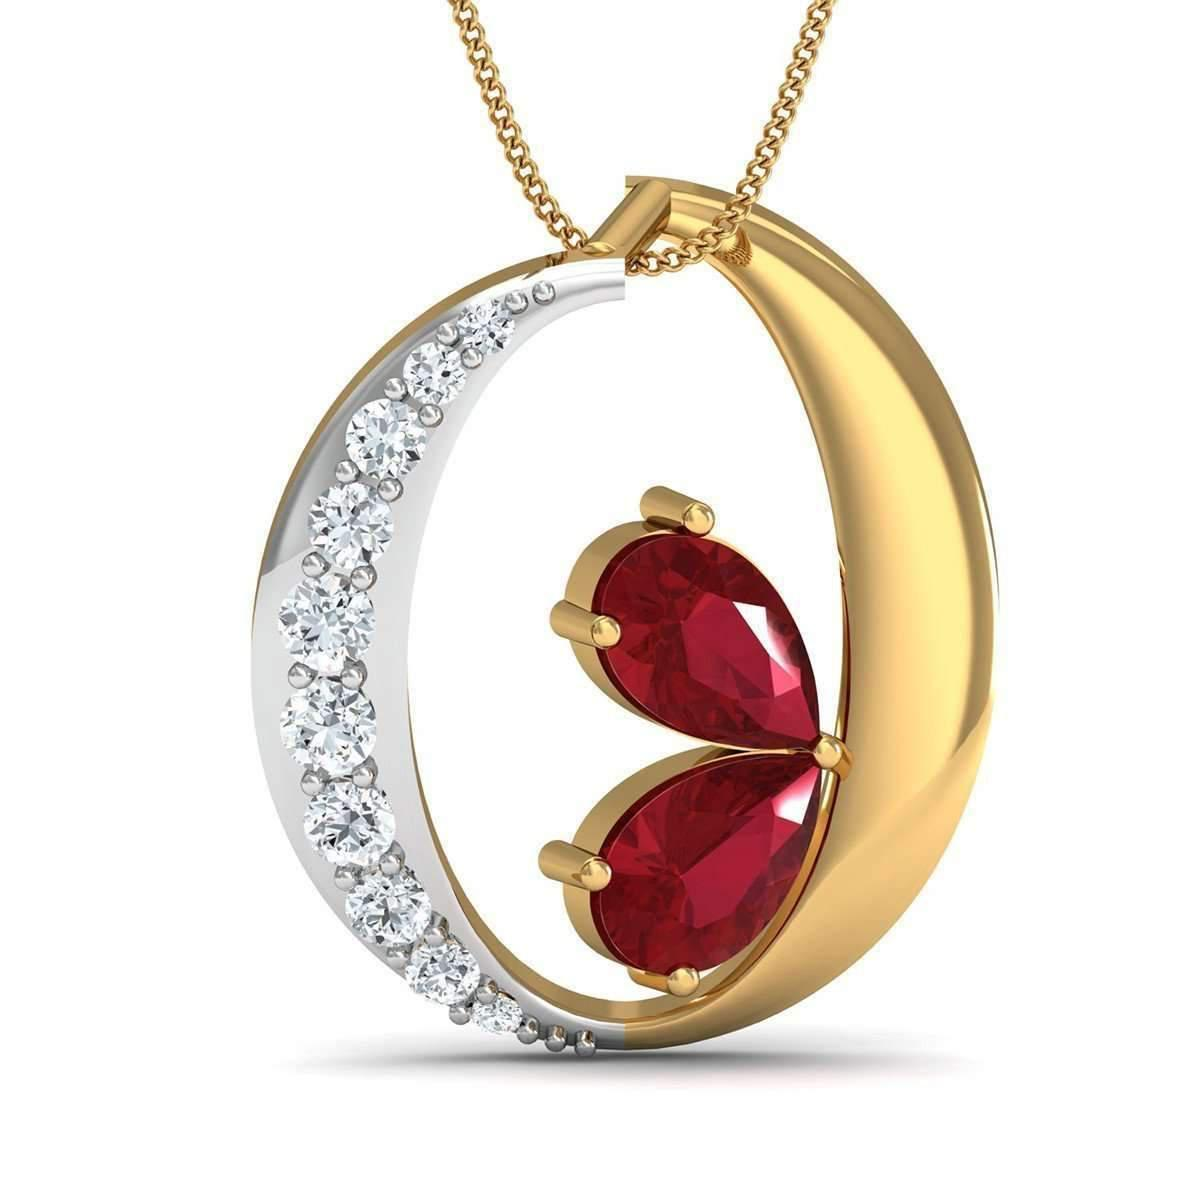 Diamoire Jewels Diamond and Pear Cut Ruby Pendant Hand-carved From 14kt Yellow Gold KU0K2je